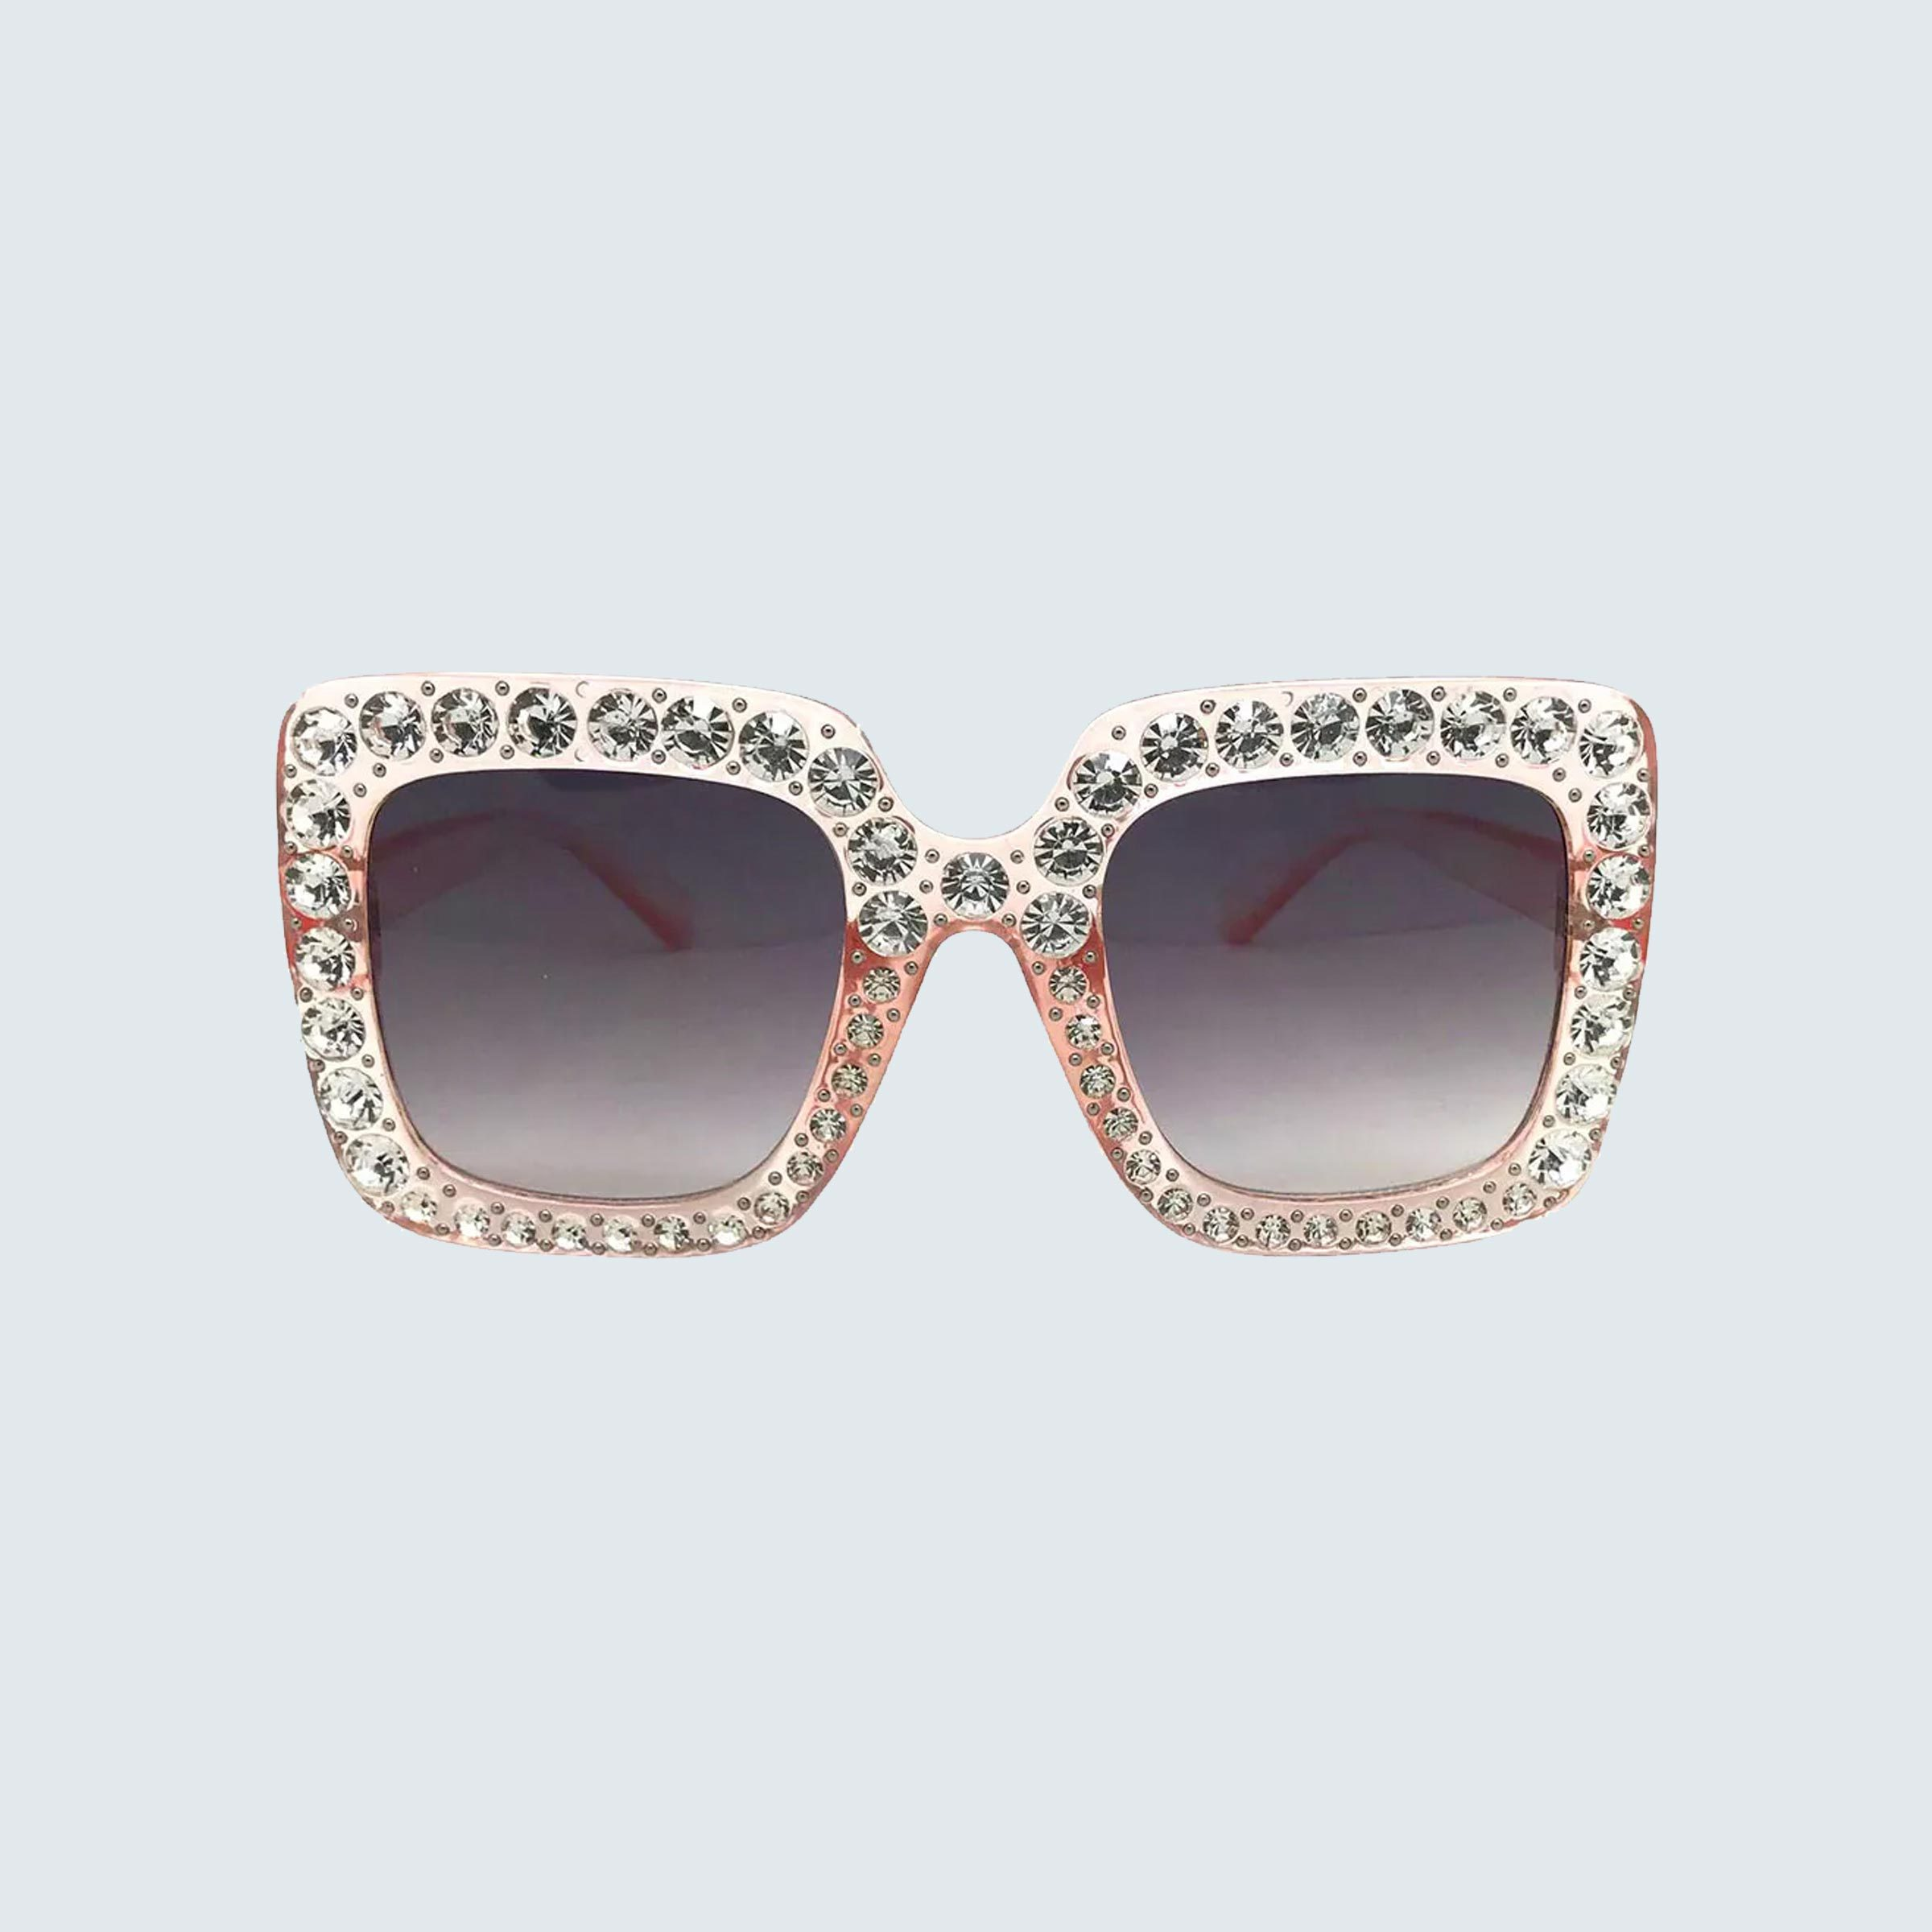 Best cheap sunglasses for attention seekers